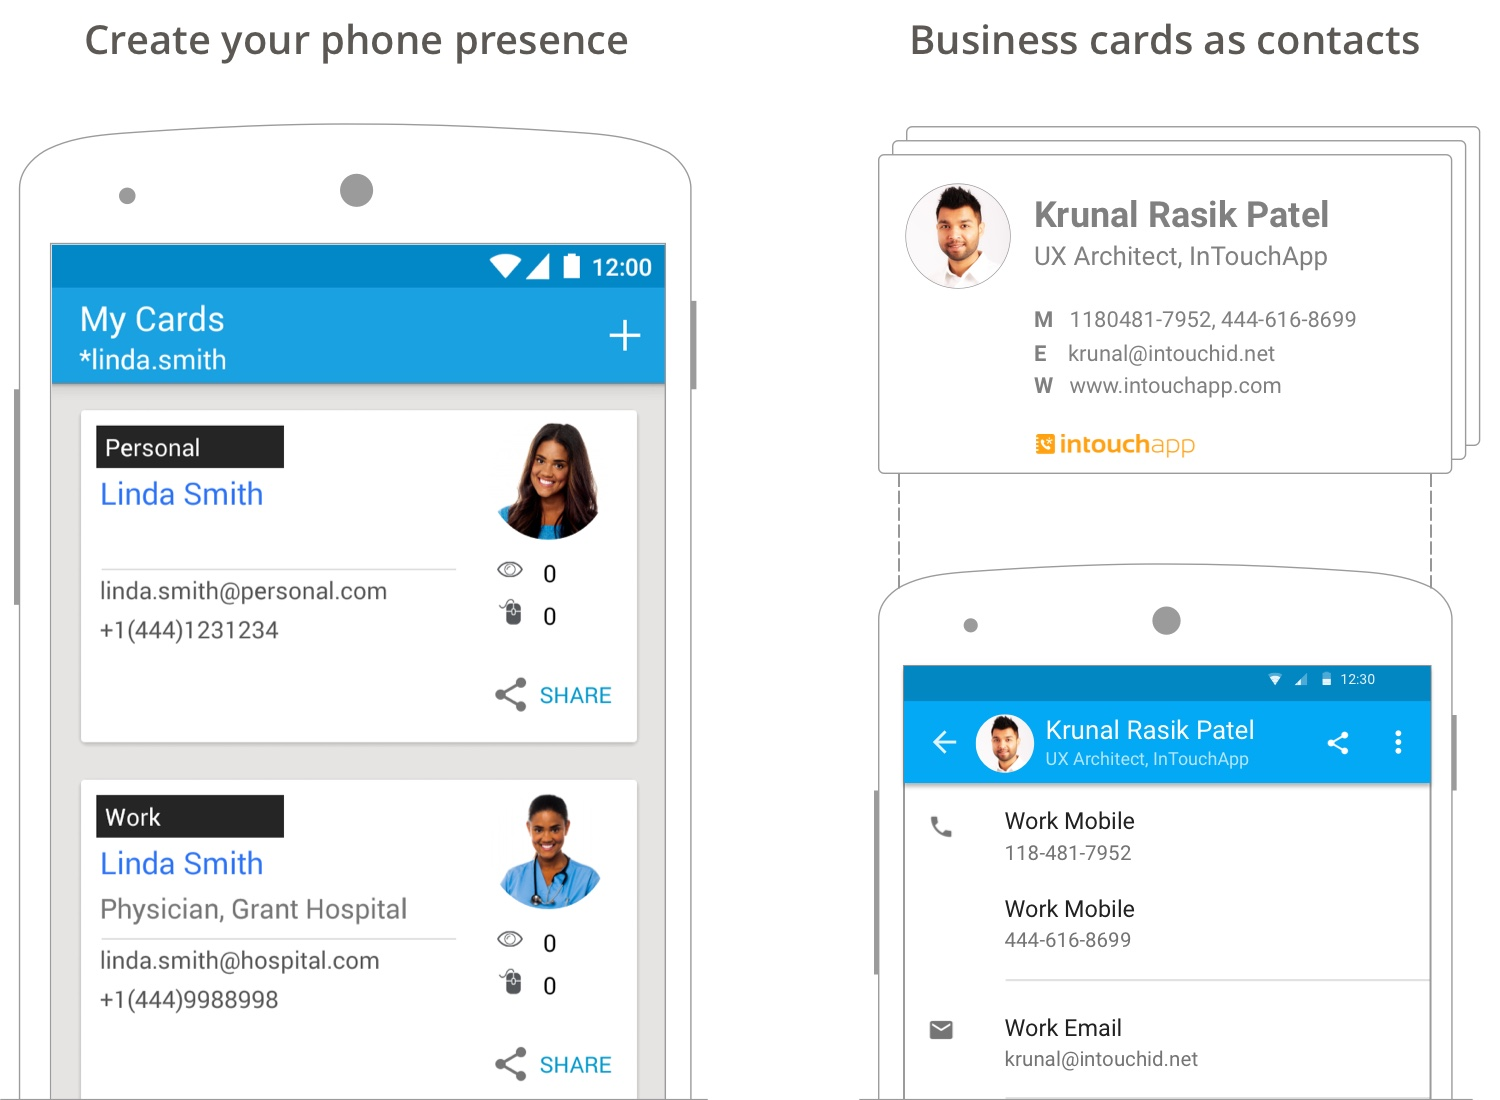 Convert Business Cards To Contacts App Choice Image - Business Card ...